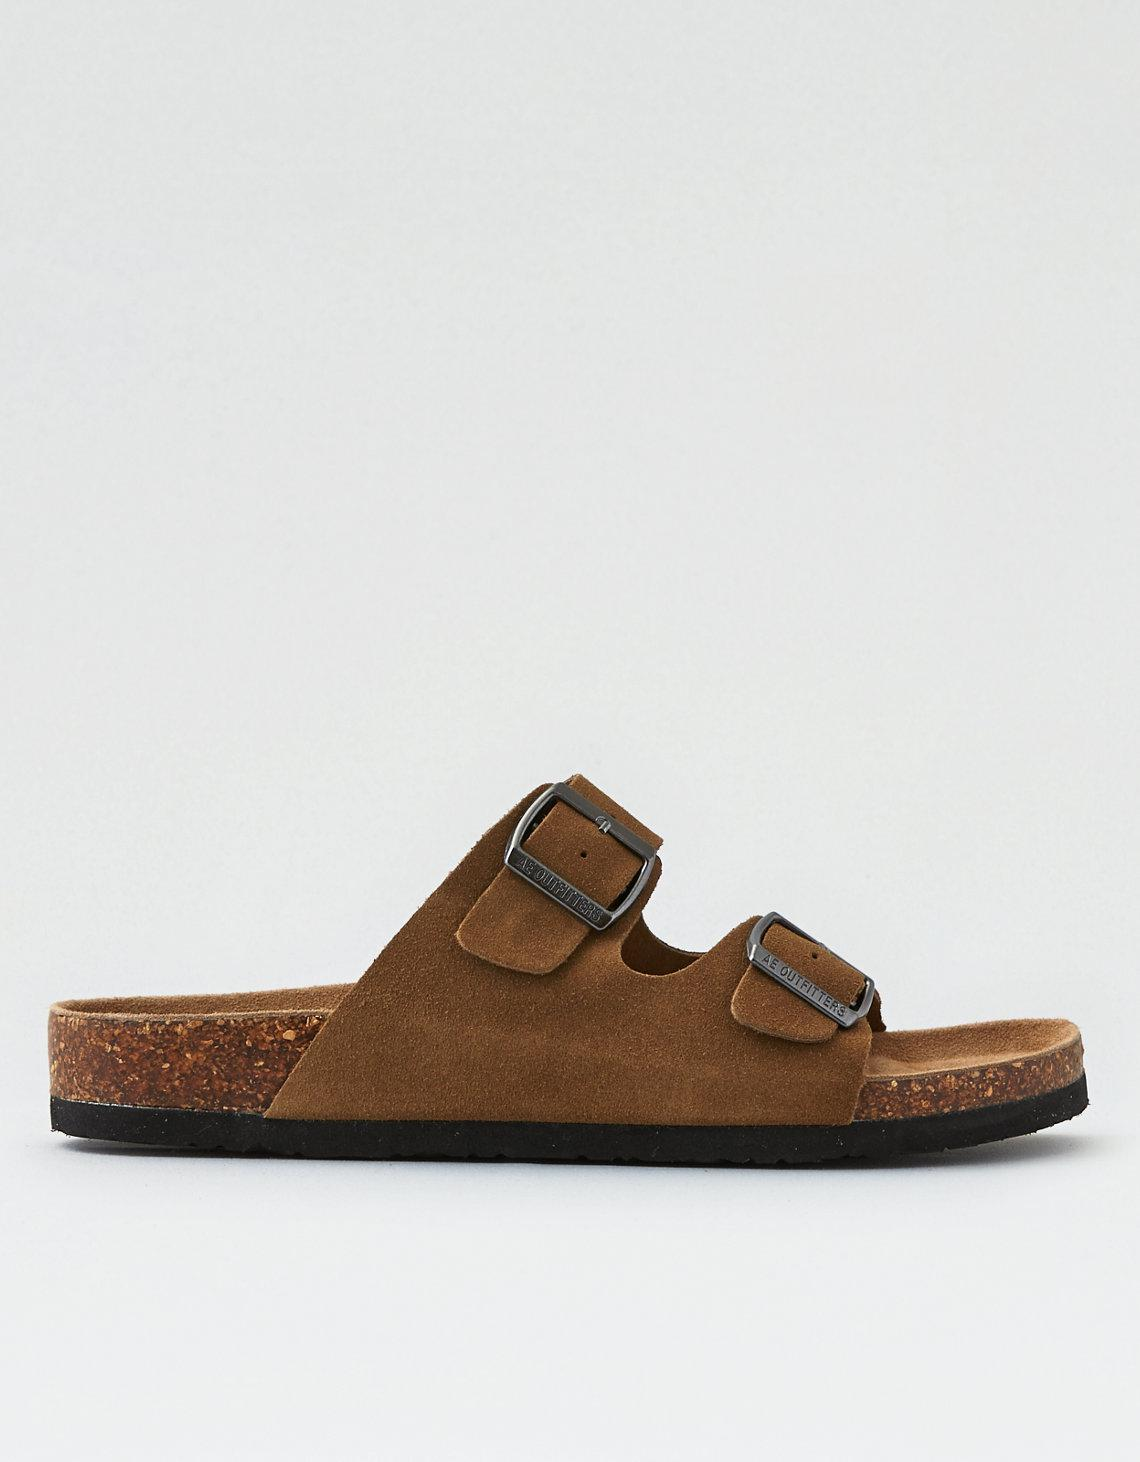 c8a140c316c3 Lyst - American Eagle Suede Double Buckle Sandal in Brown for Men